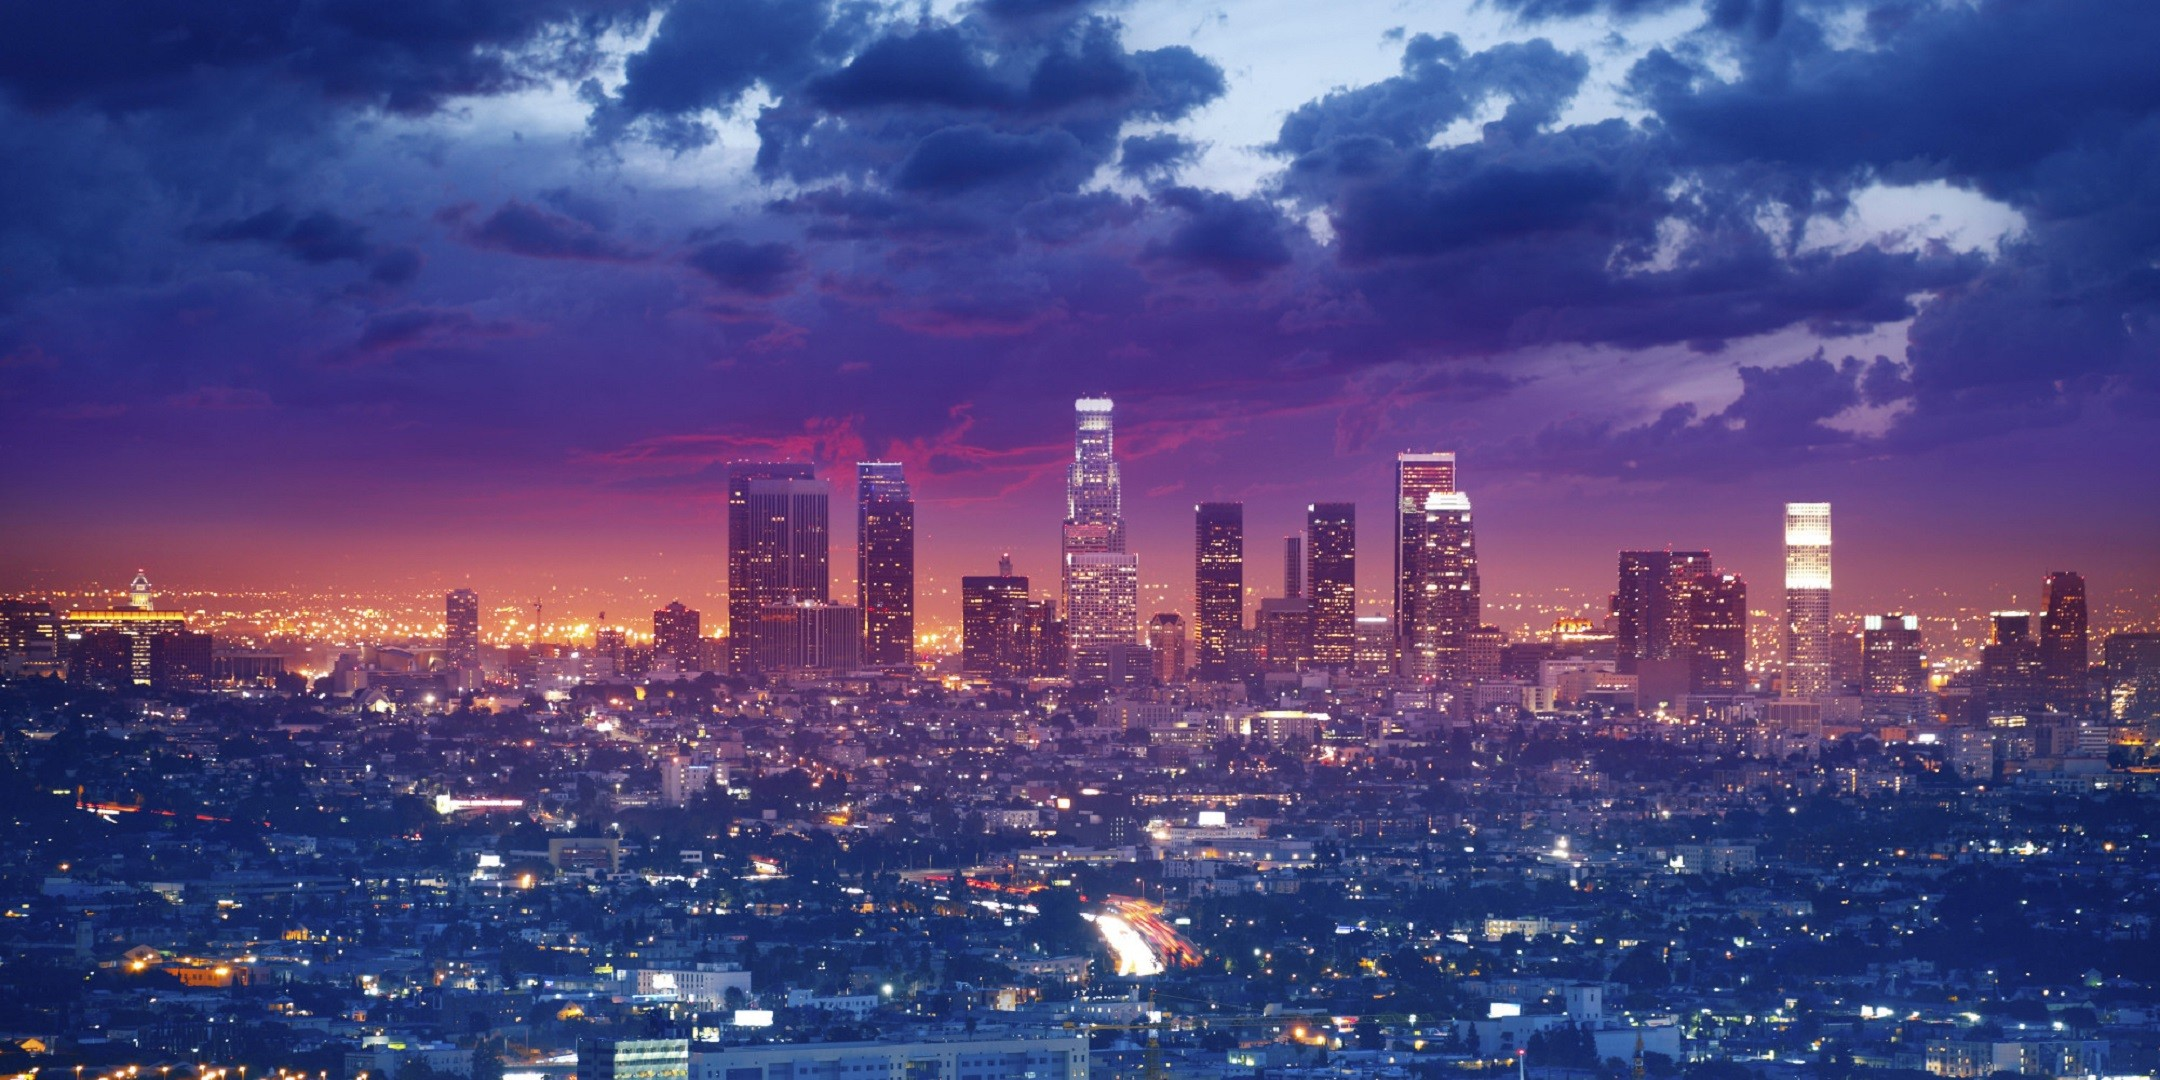 Los Angeles Wallpaper For Computer